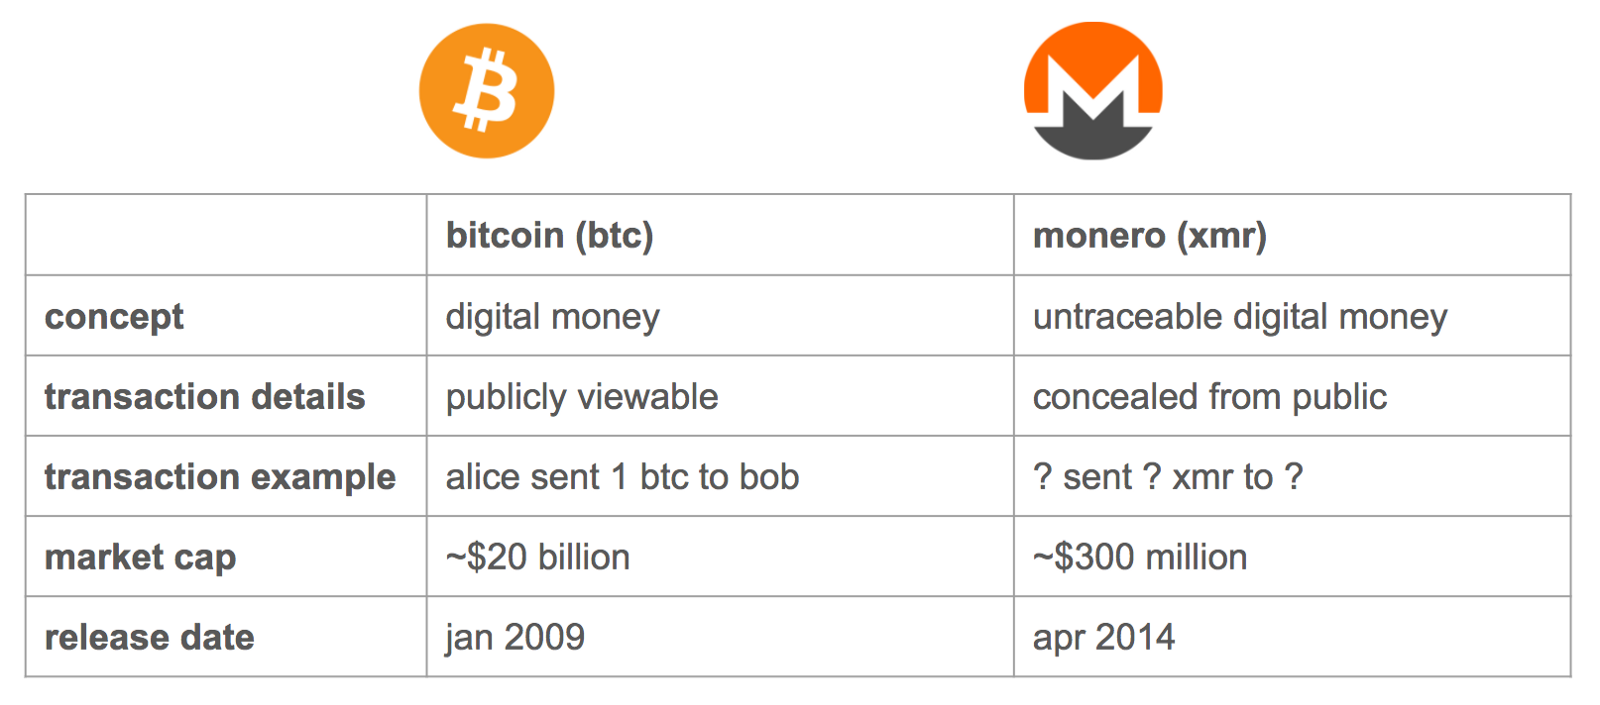 The Difference Between Bitcoin And Monero